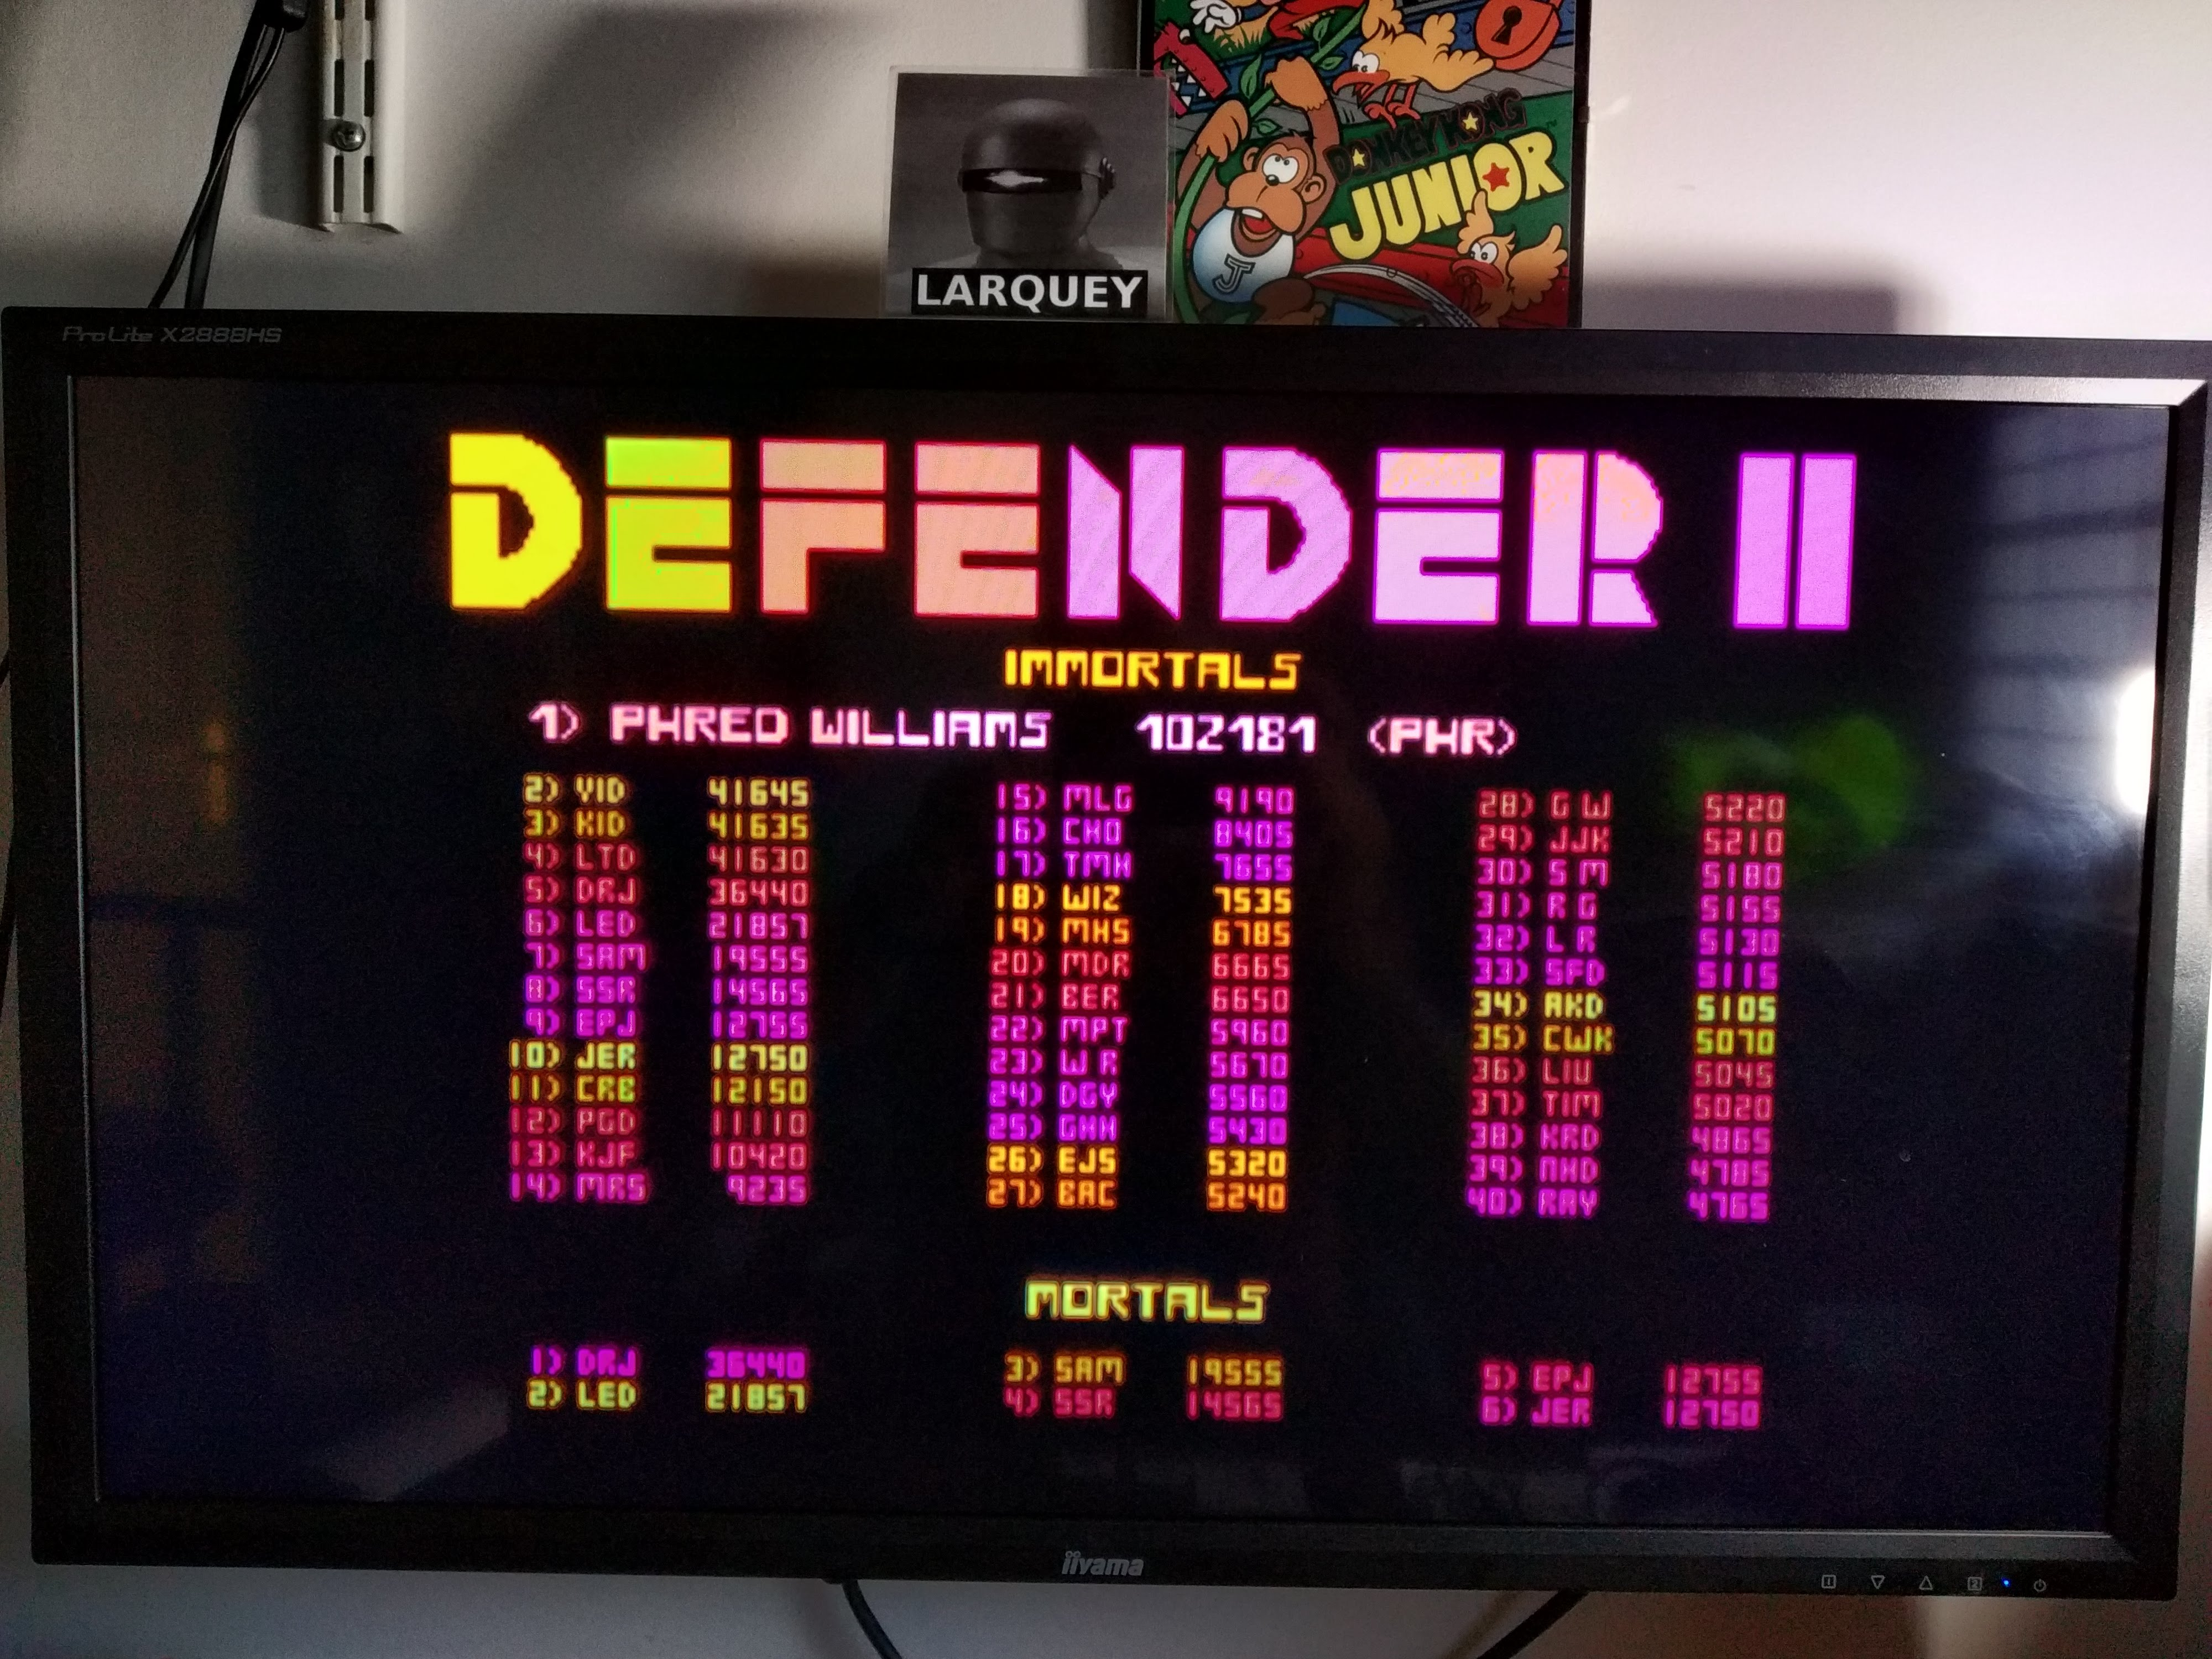 Larquey: Midway Arcade Treasures: Defender II (Playstation 2 Emulated) 6,650 points on 2020-08-02 05:35:56